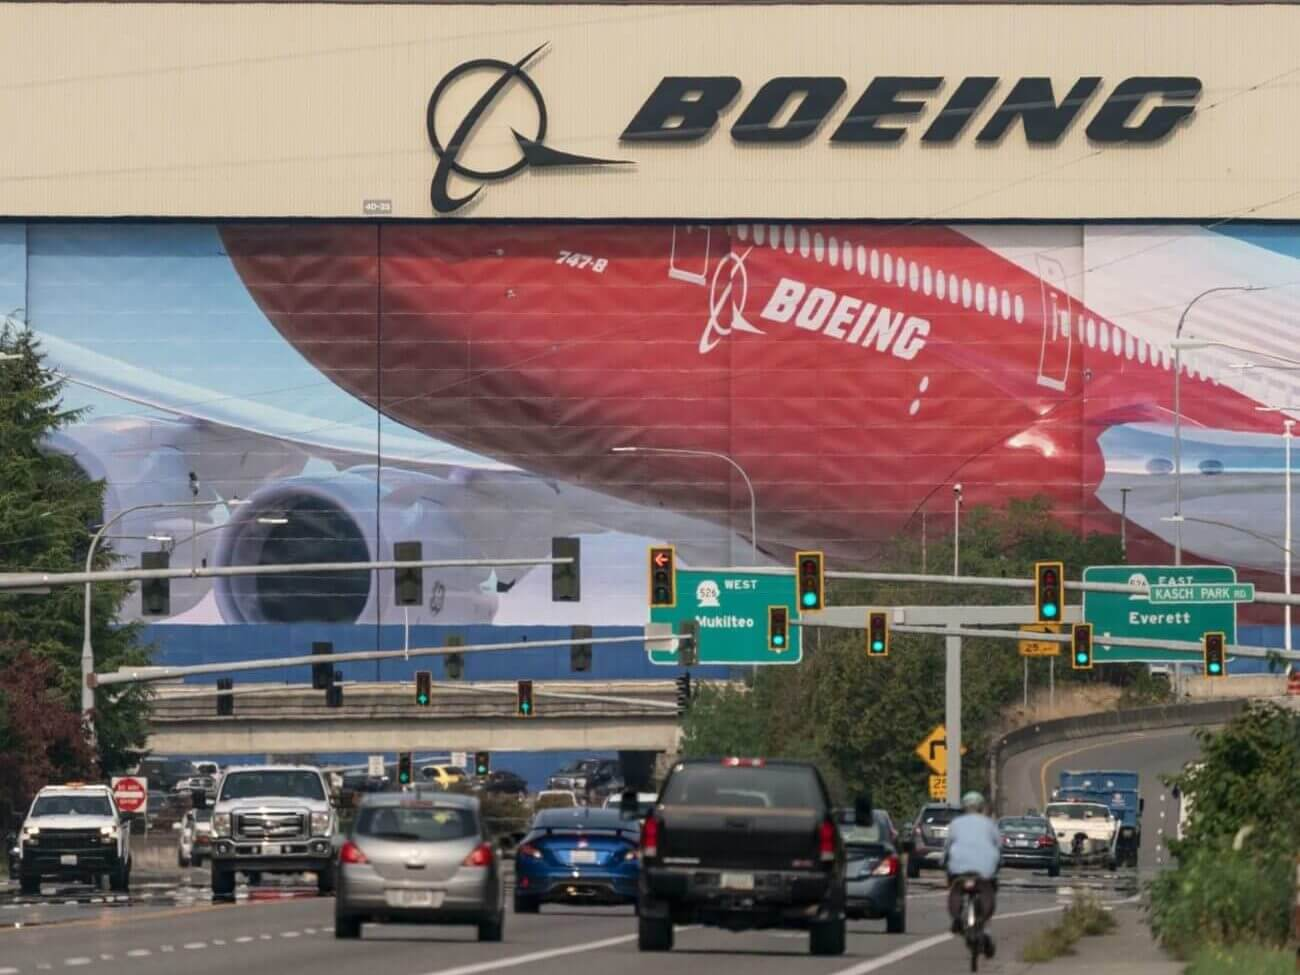 Boeing Is the Latest Company to Speed a Adverse Commercial Atmosphere